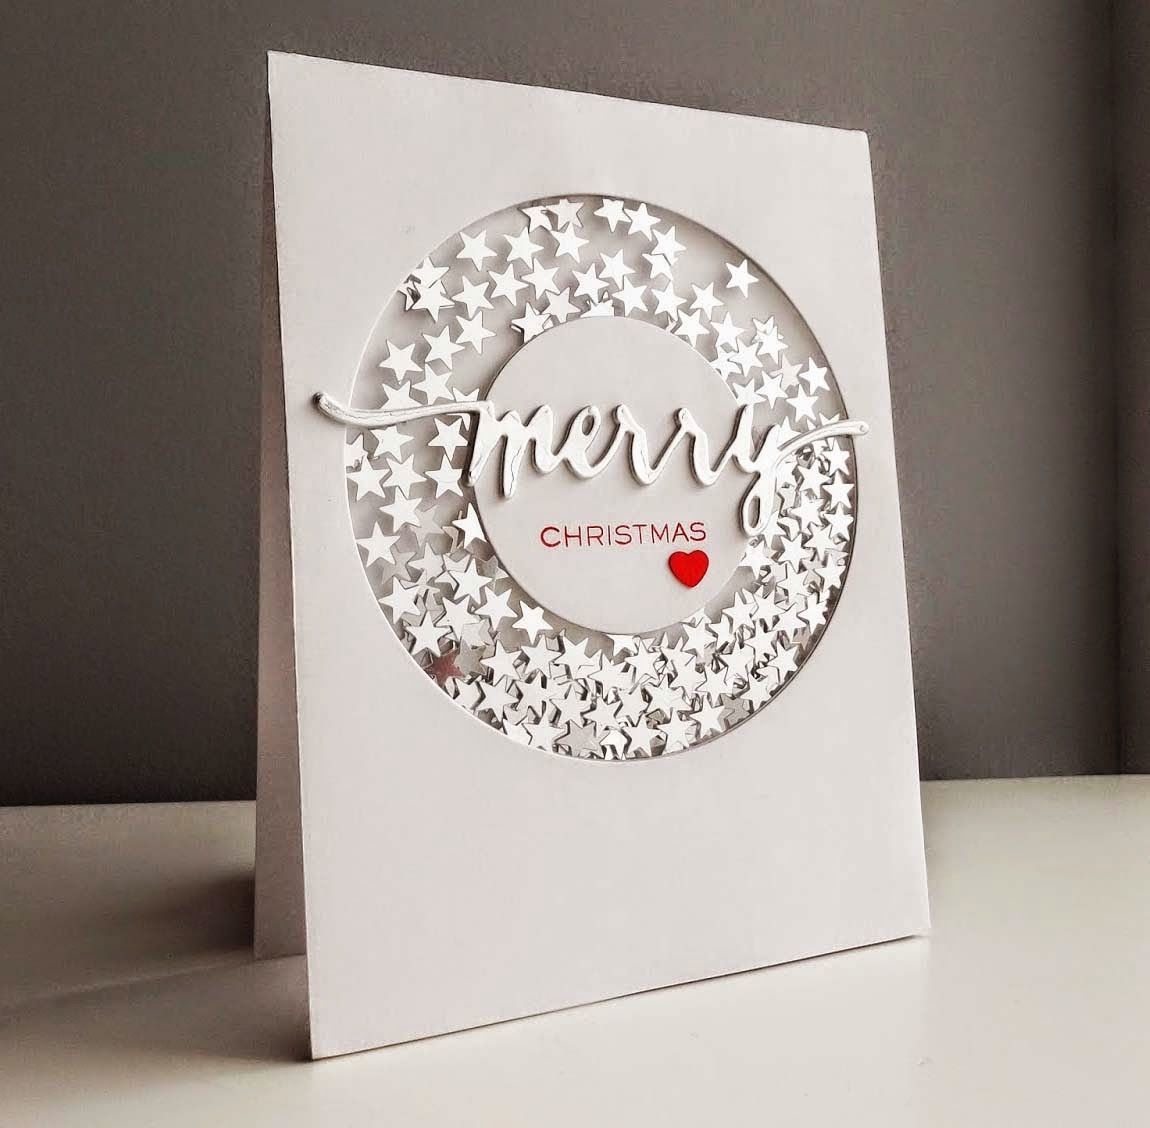 Fusion card challenge winners of sparkly christmas shaker cards